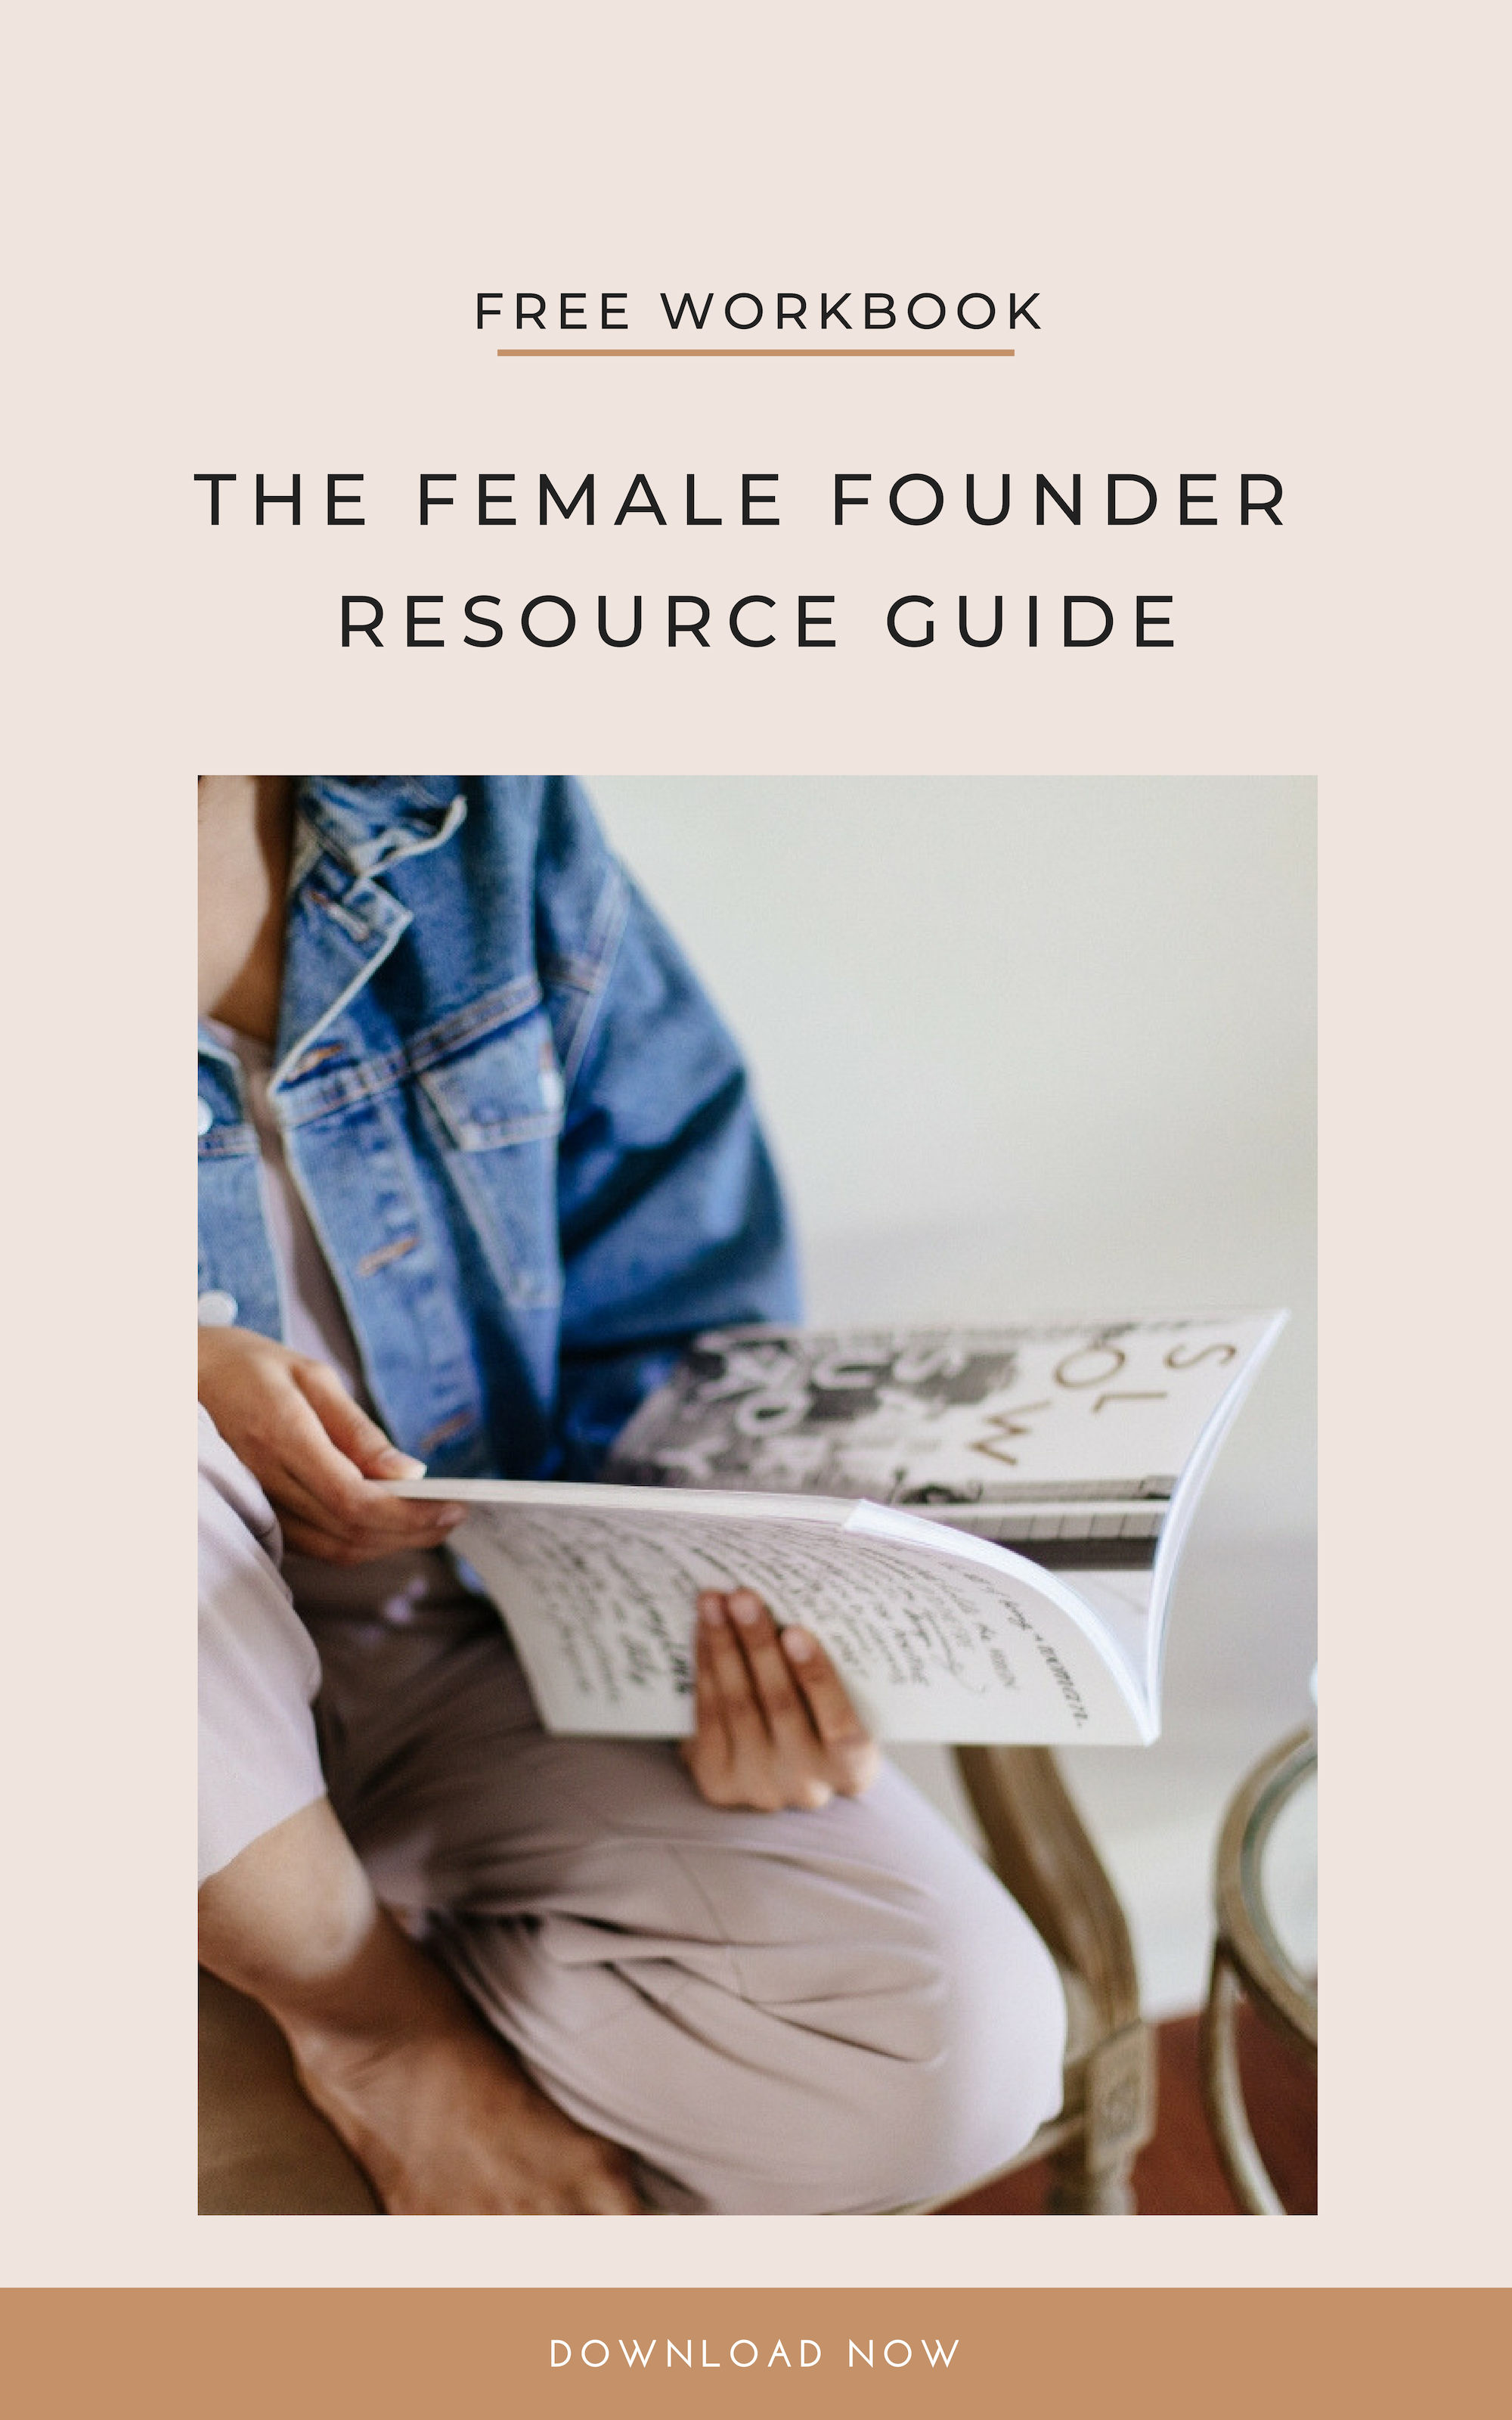 The Female Founder Resource Guide